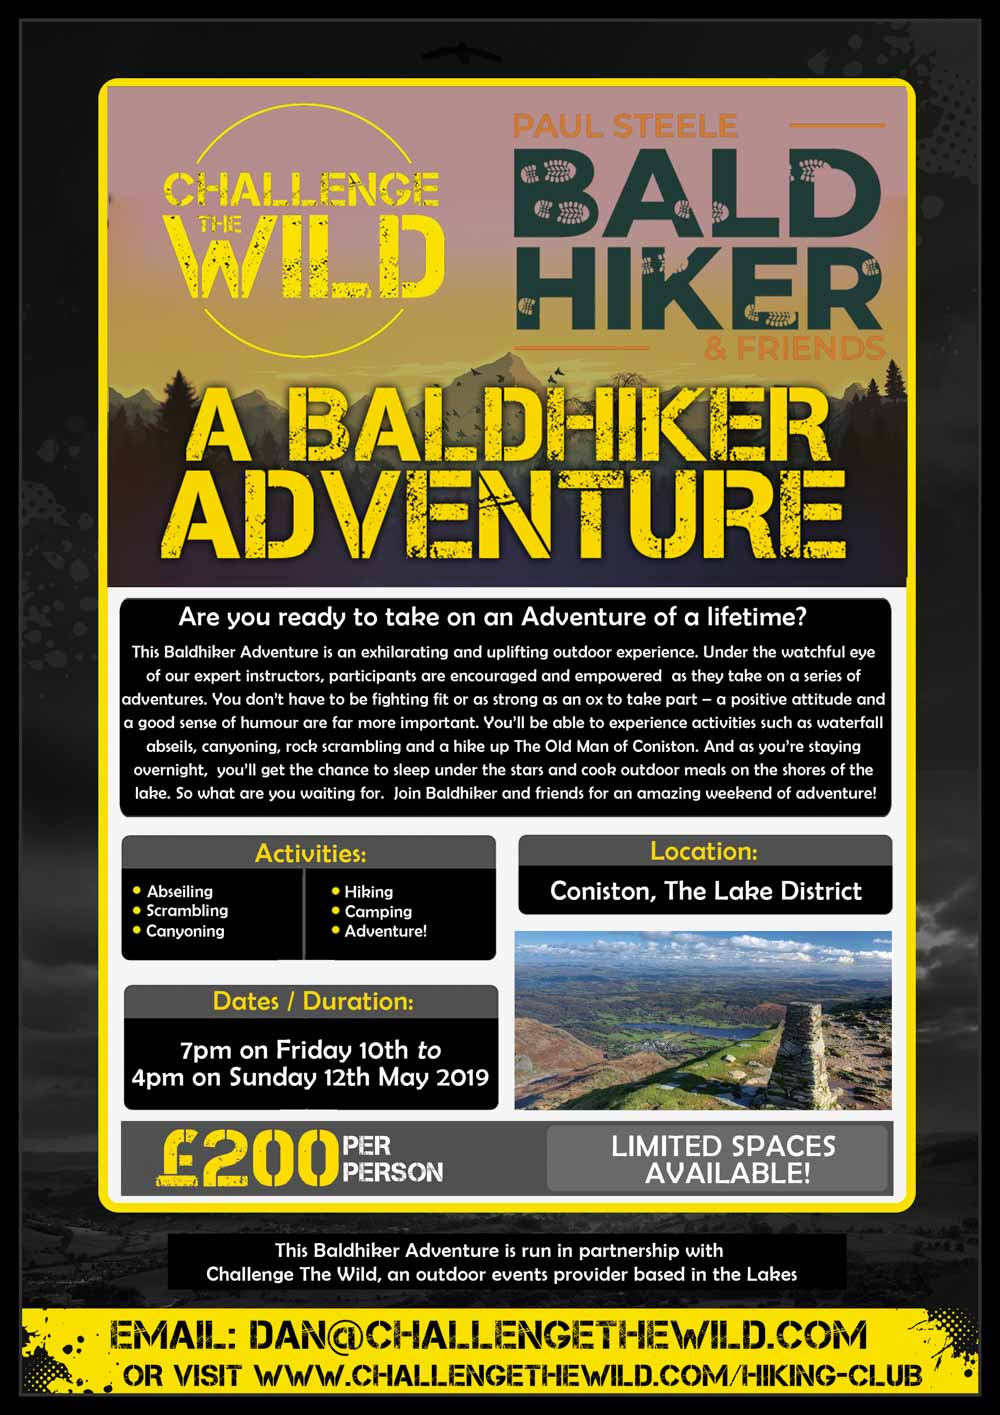 Survive-The-Wild-New-Flyer-Bald-Hiker-1 Join Me On A BaldHiker Lake District Adventure